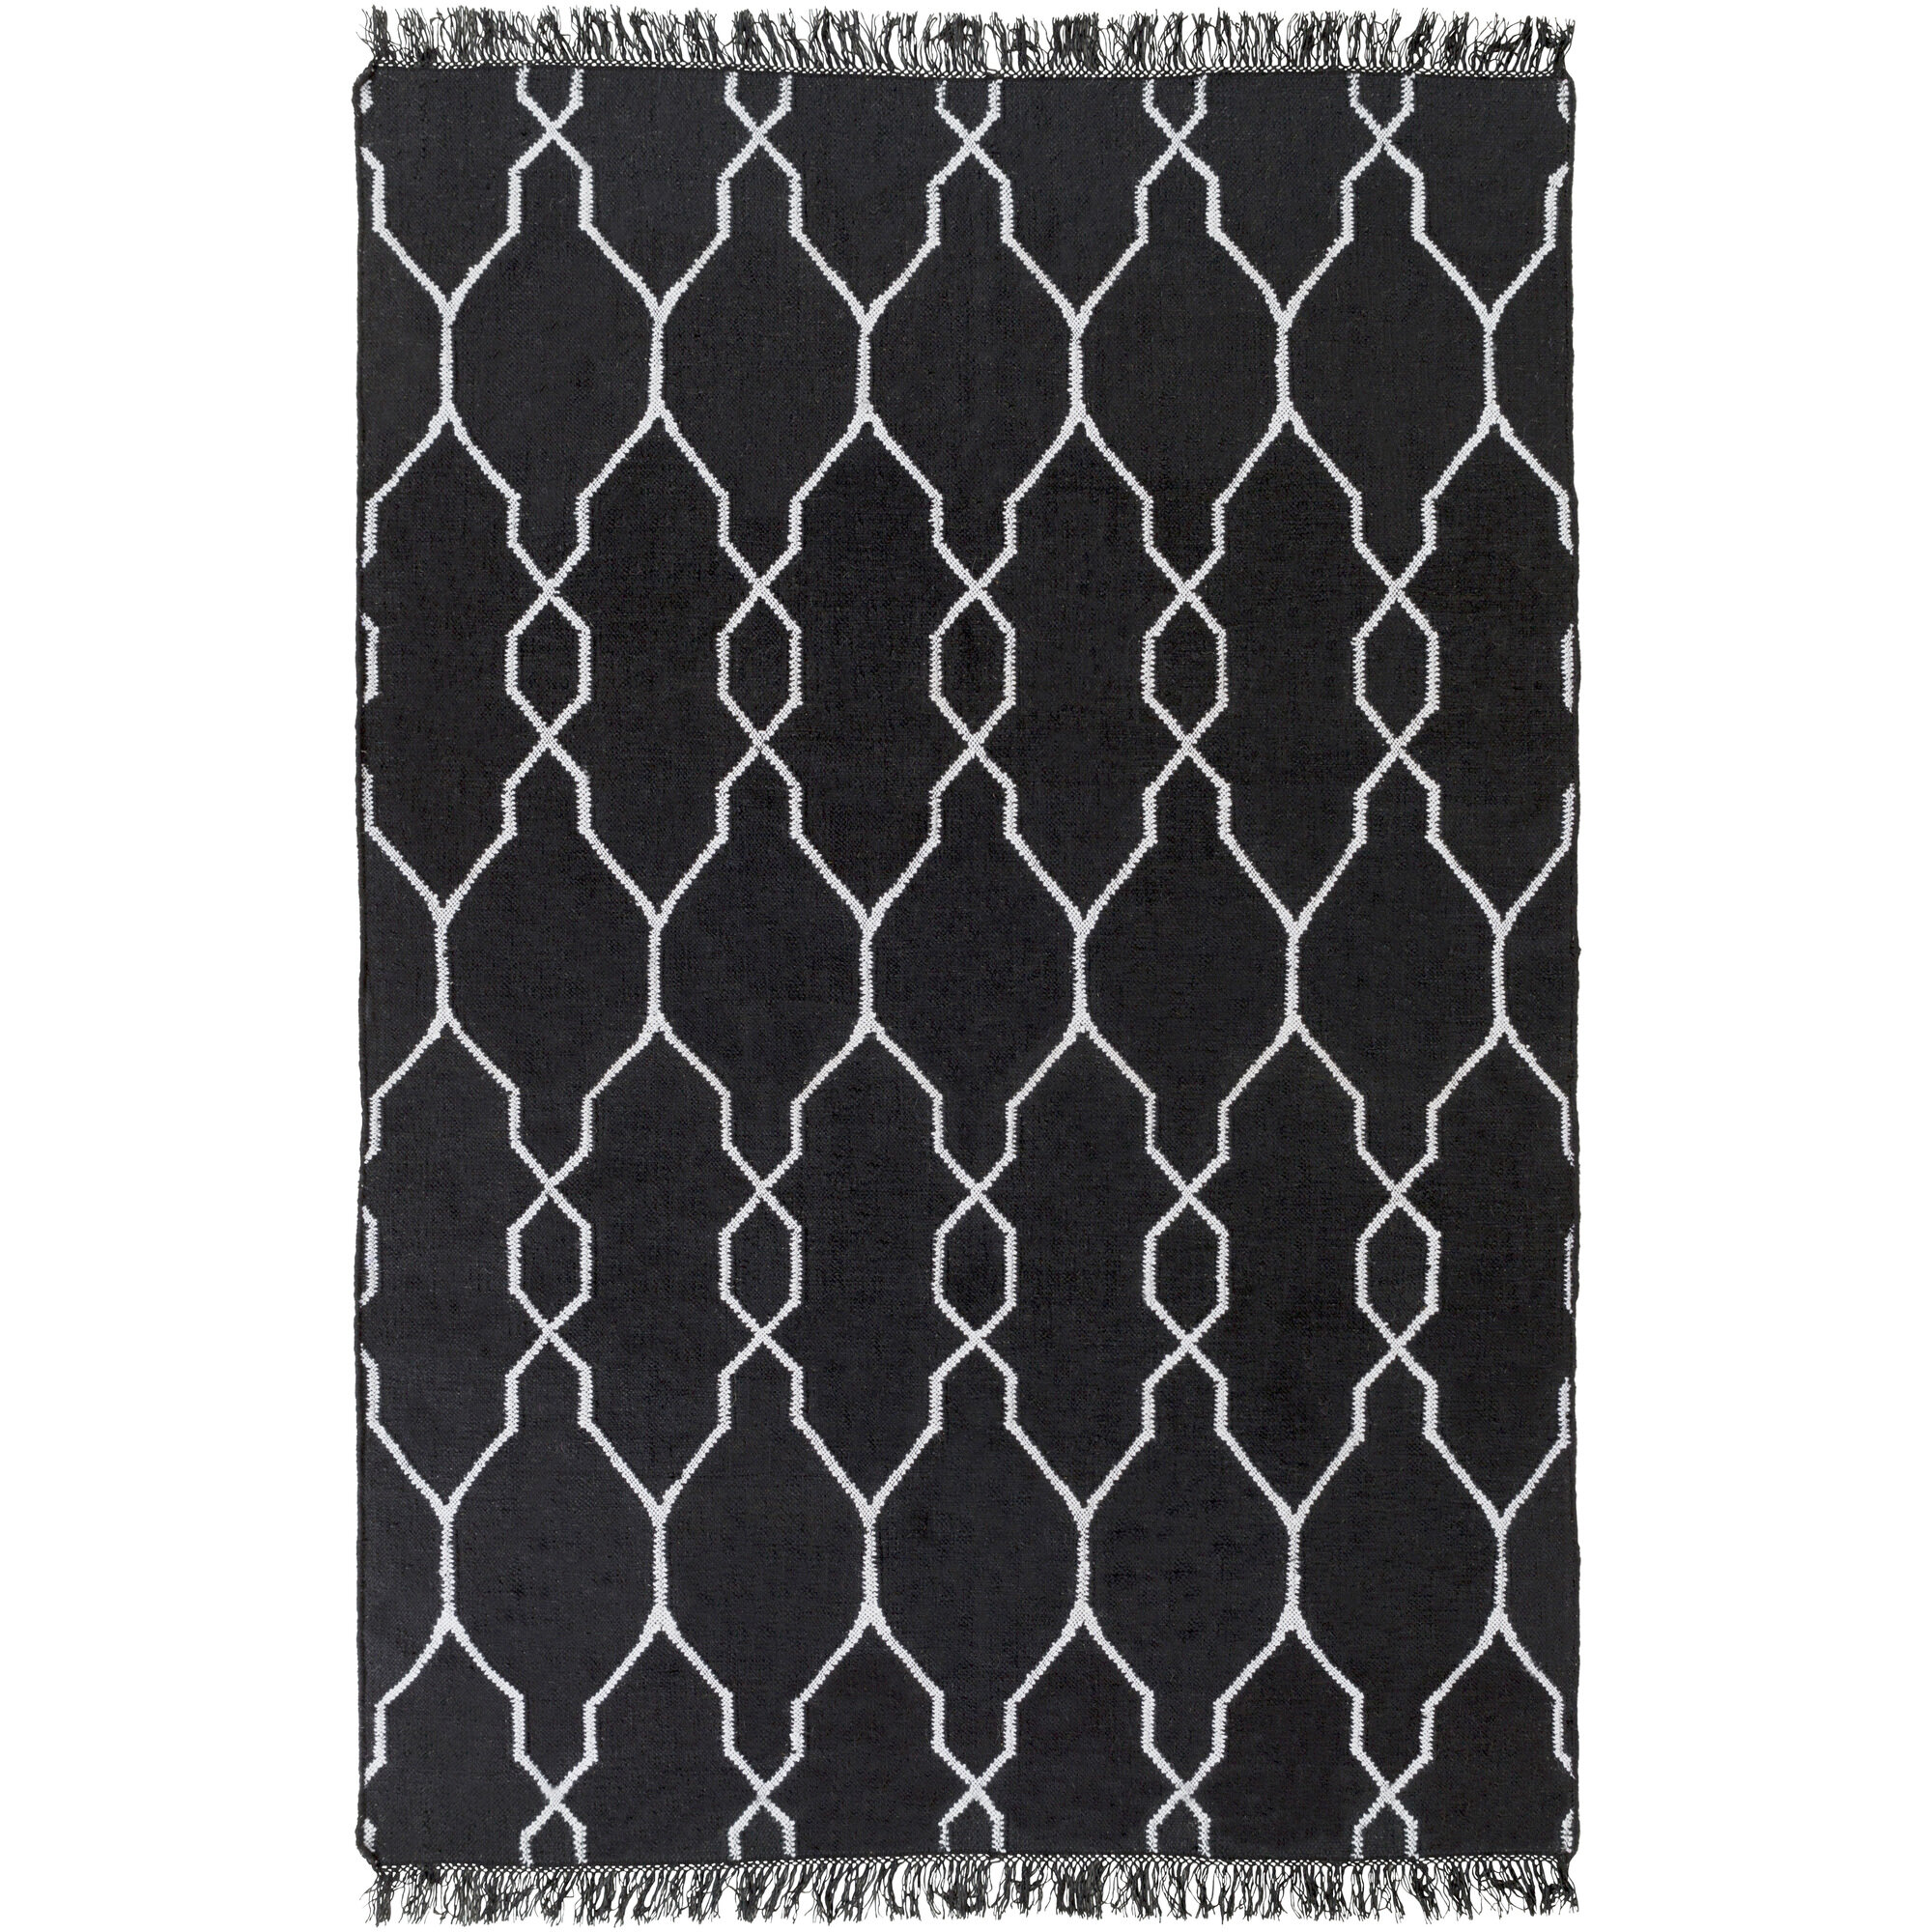 Charlton Home Larksville Geometric Handwoven Black Indoor Outdoor Area Rug Wayfair Ca